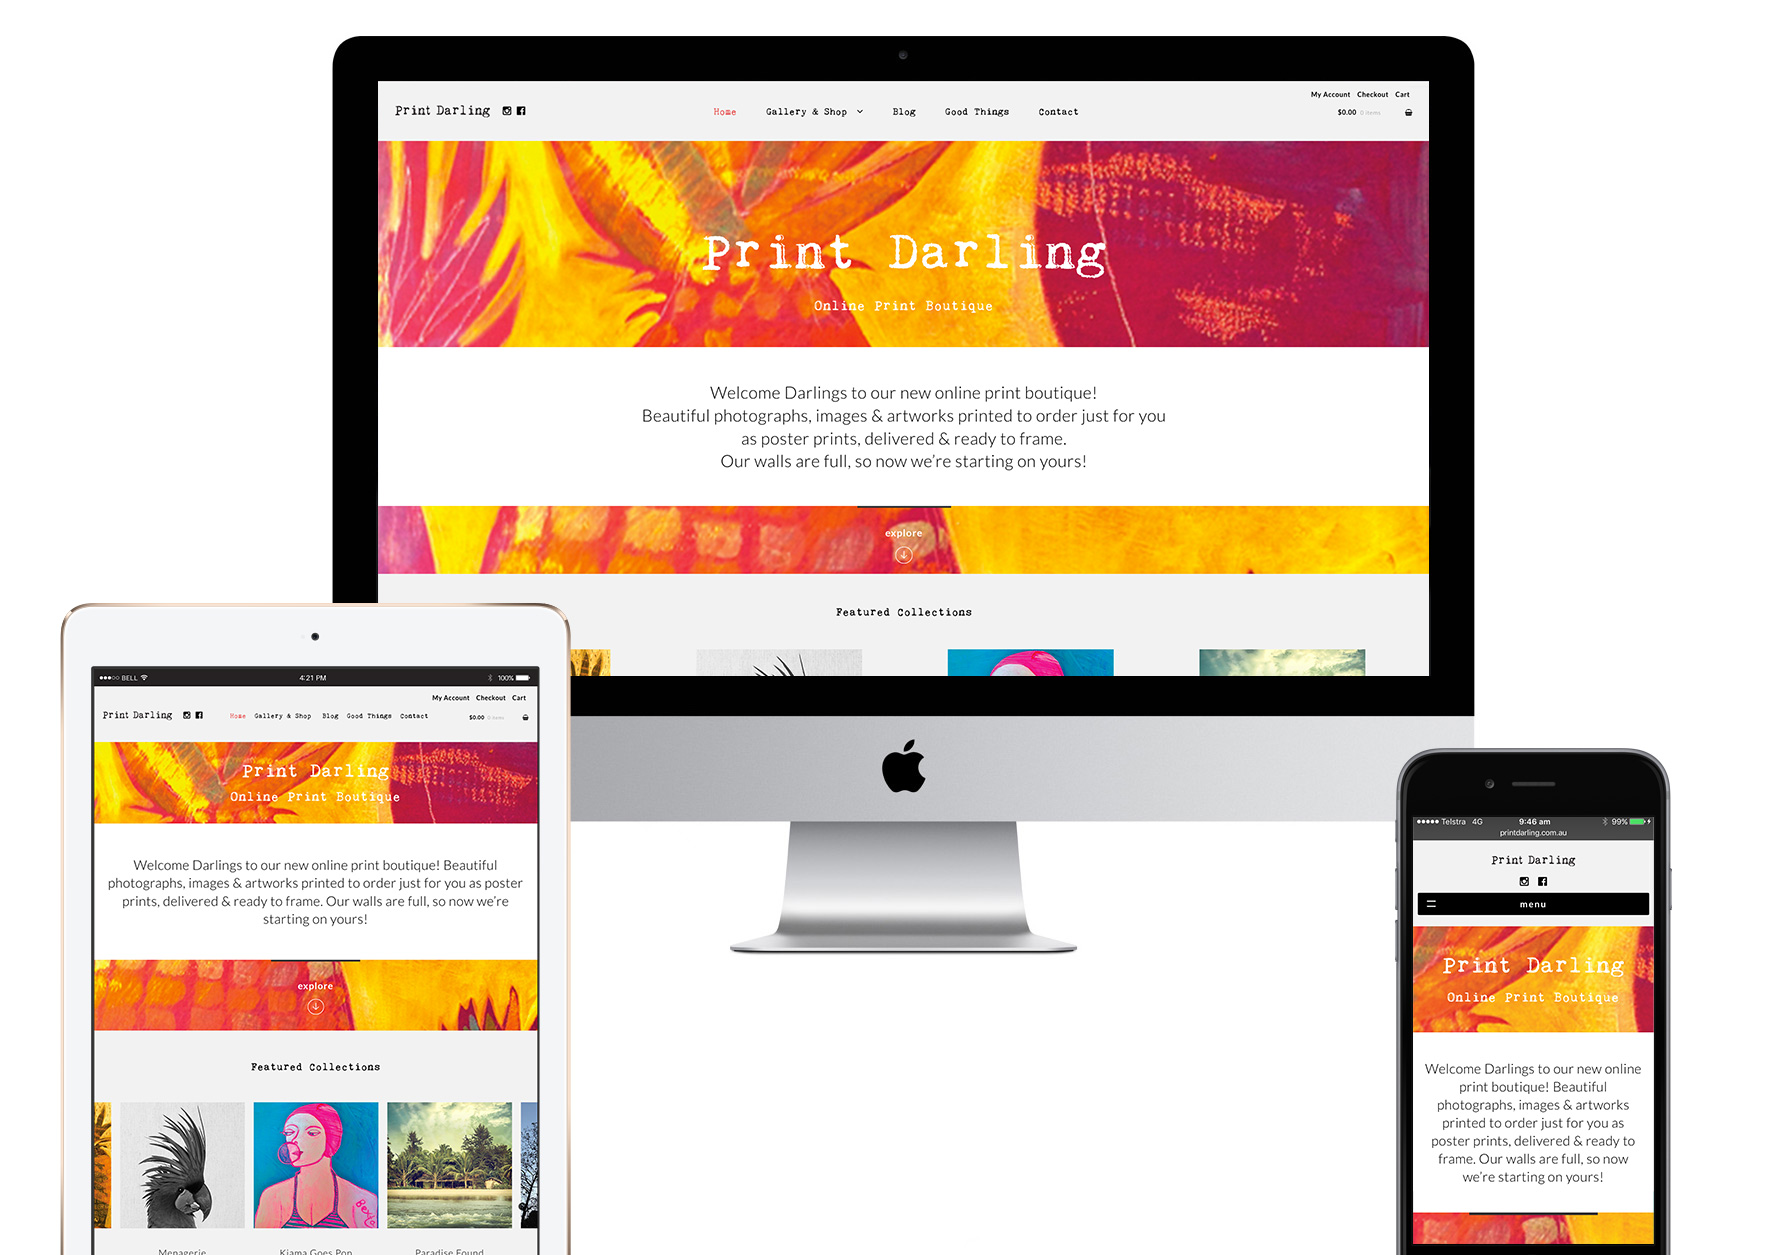 Print Darling - Responsive web design and web development